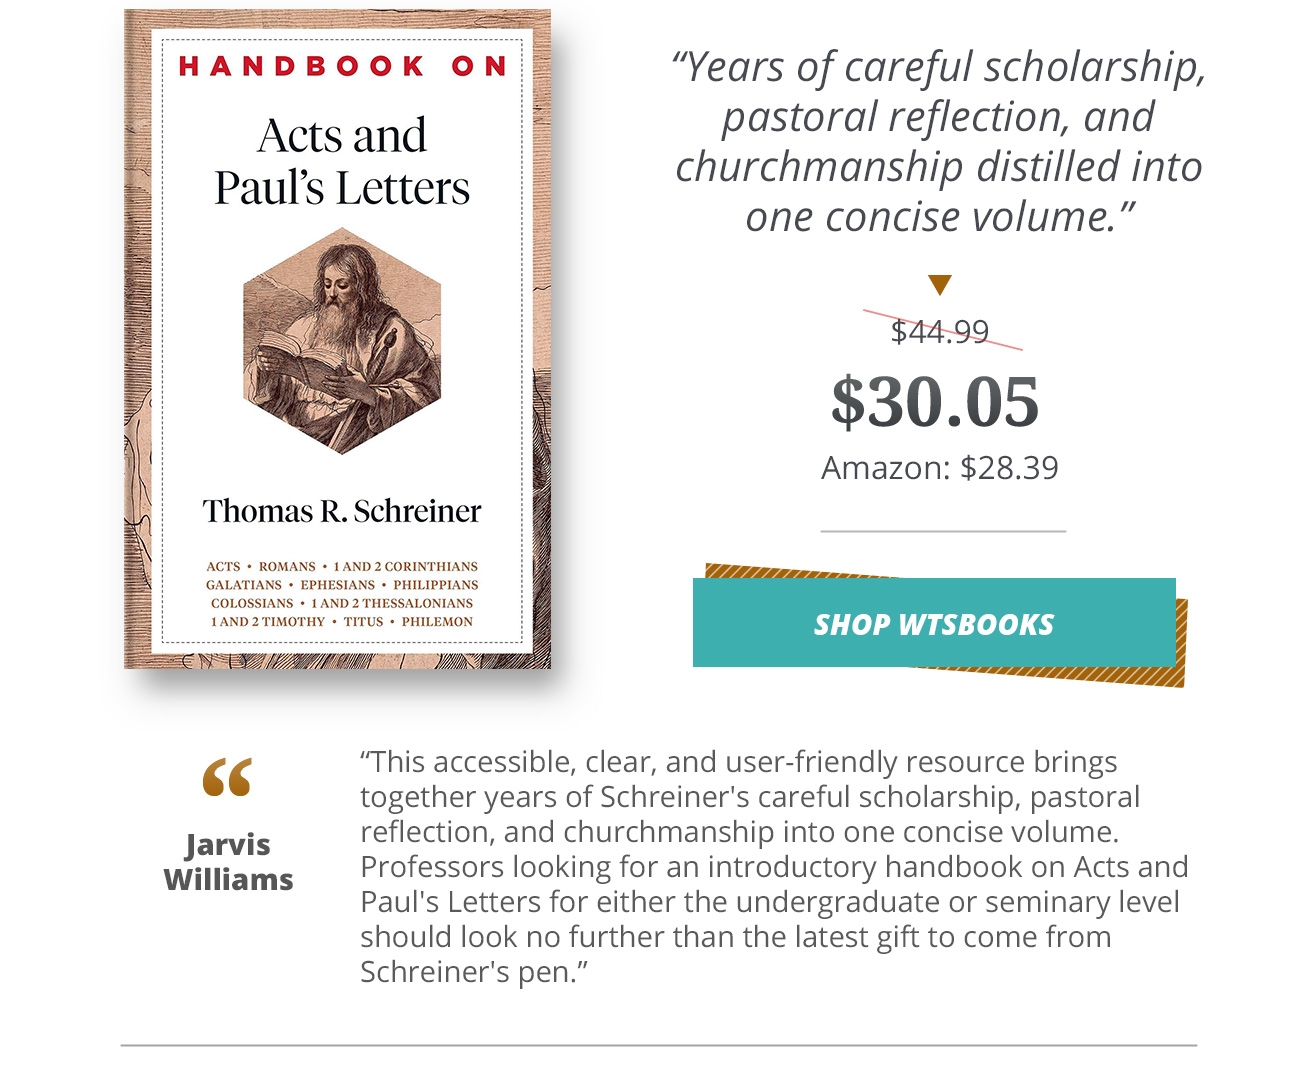 New & Noteworthy in Theology